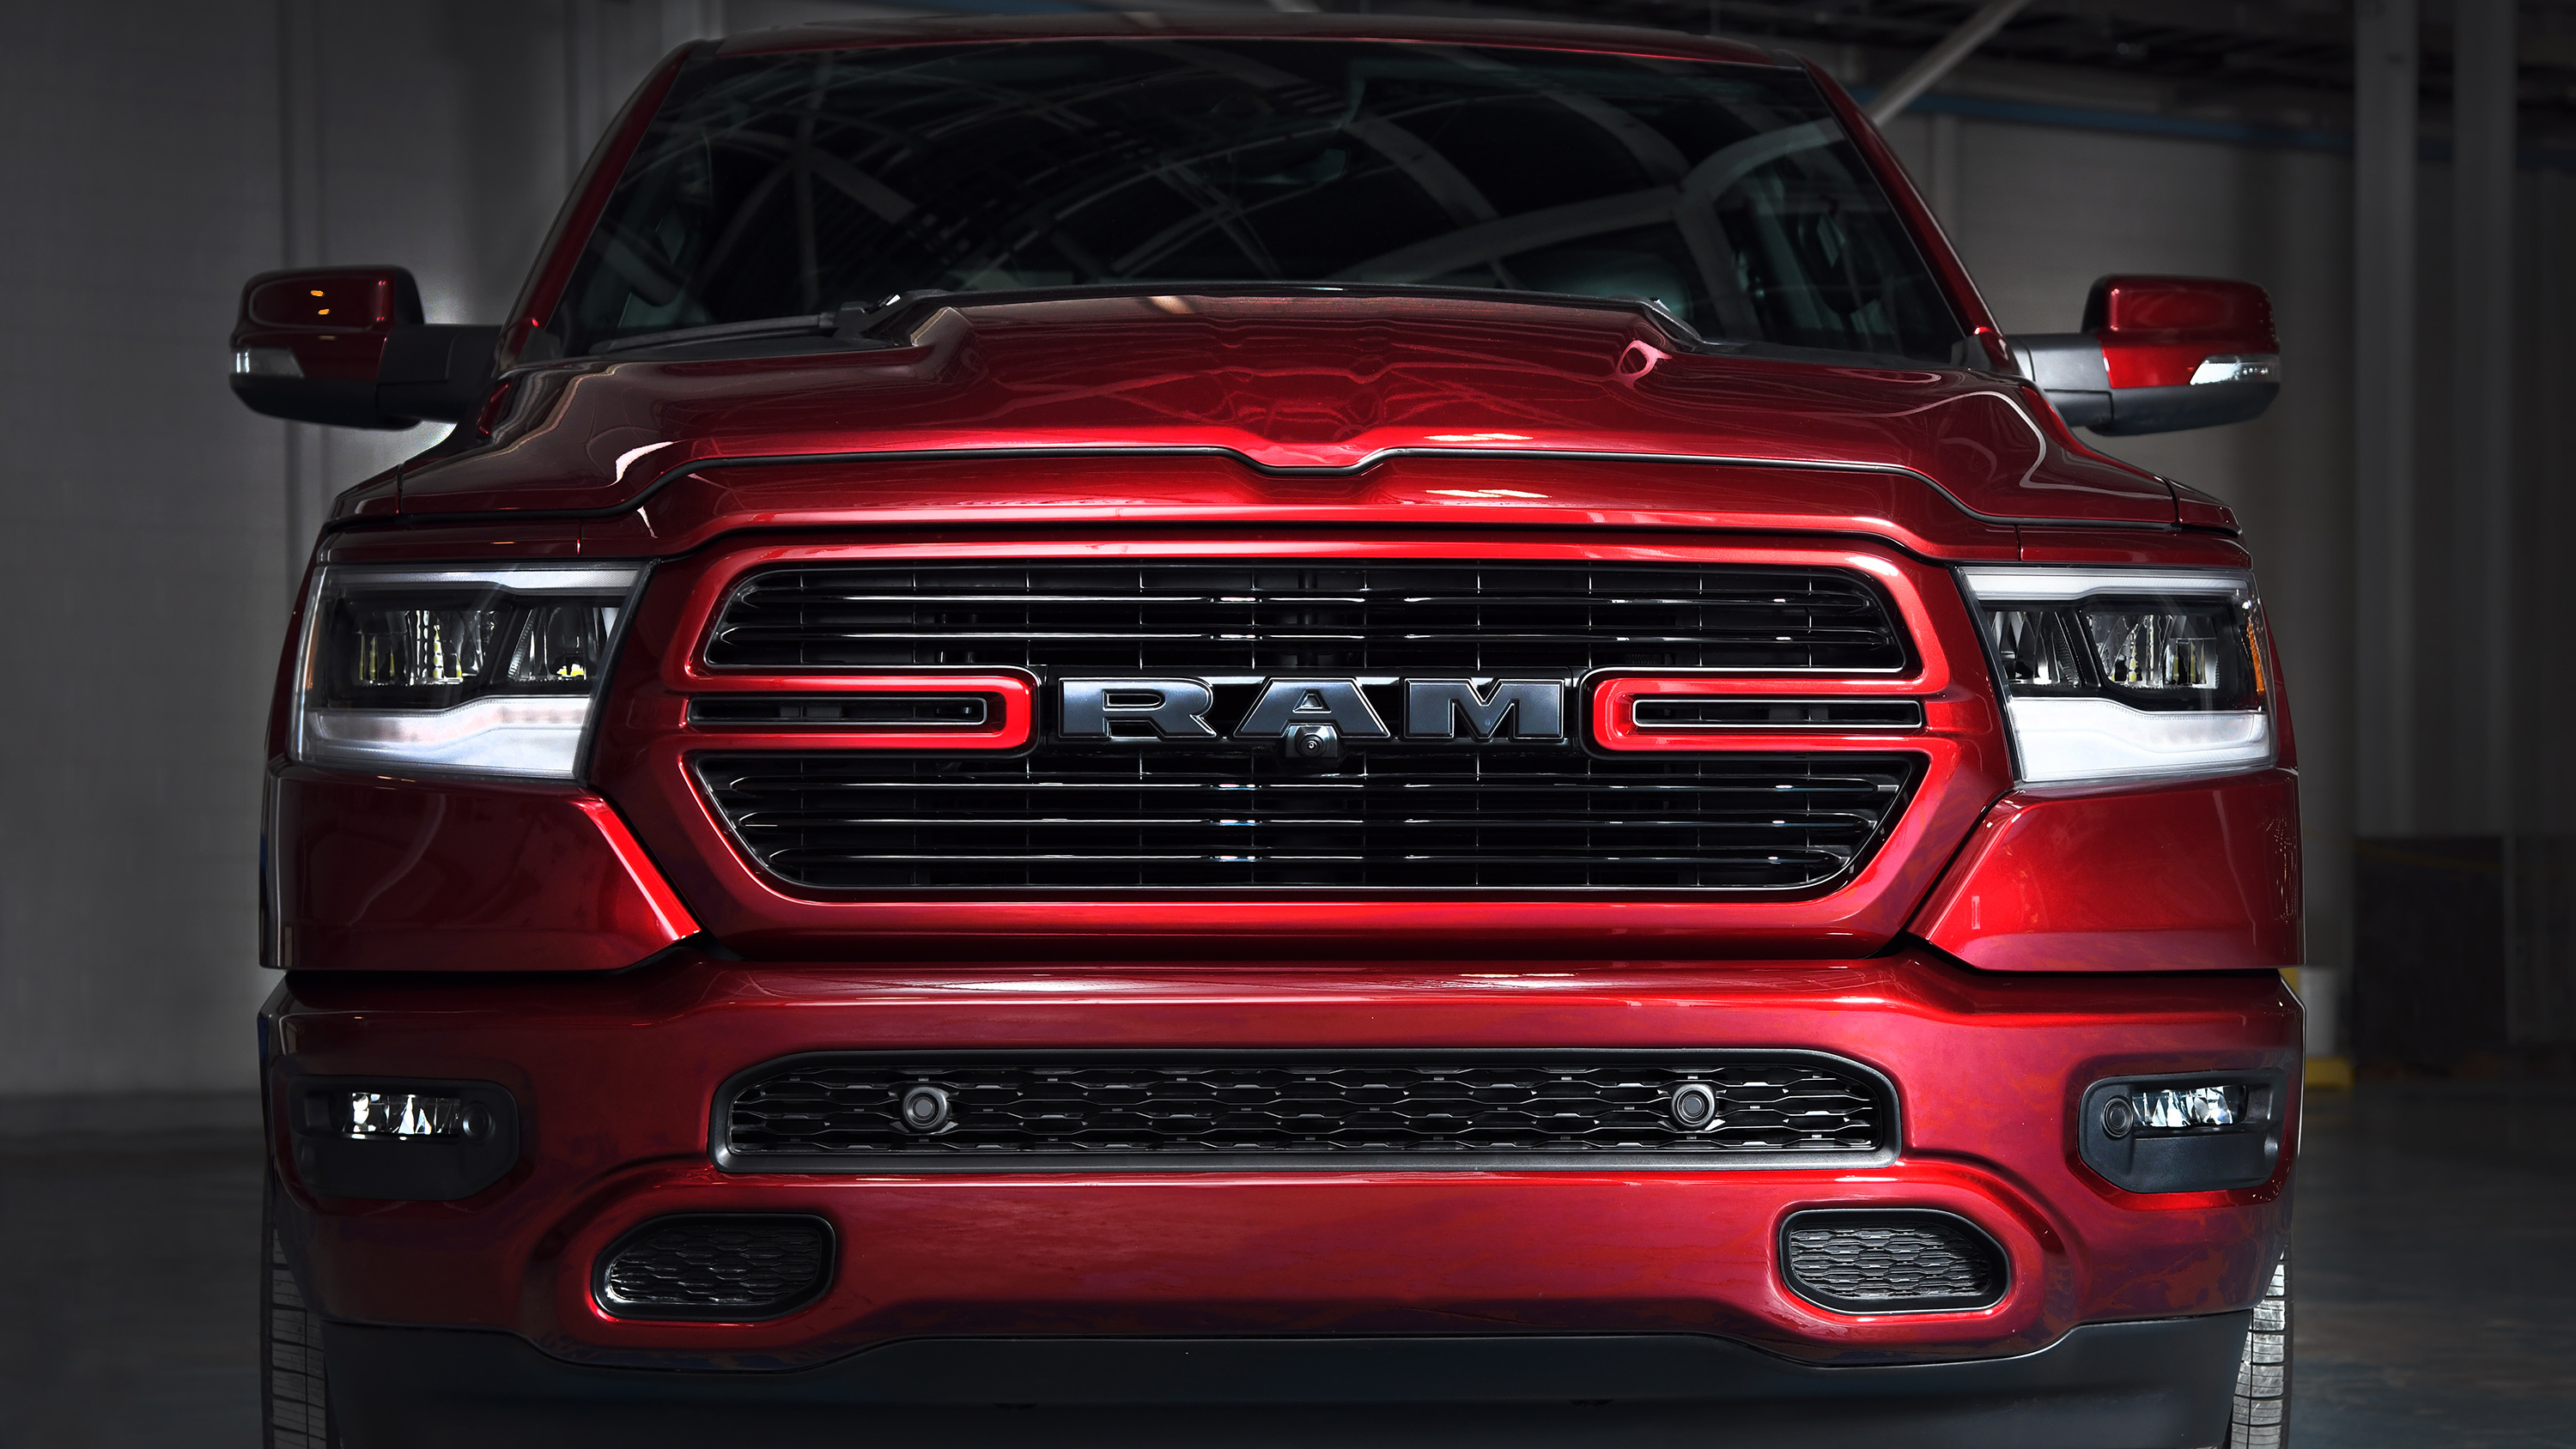 2019 Ram 1500 Sport Crew Cab Wallpaper | HD Car Wallpapers ...